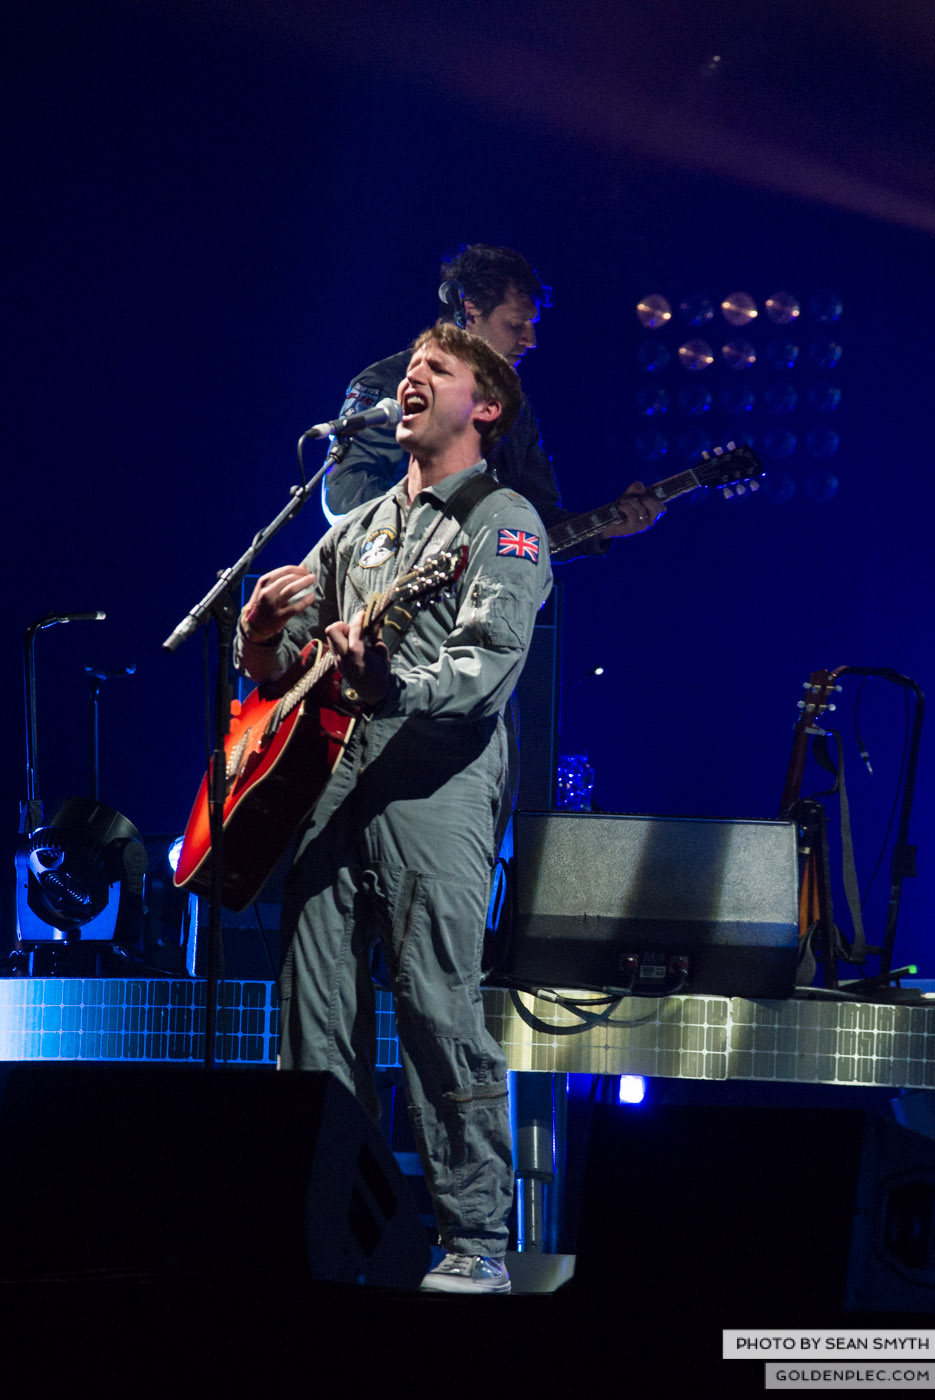 james-blunt-at-3arena-by-sean-smyth-20-11-14-27-of-29